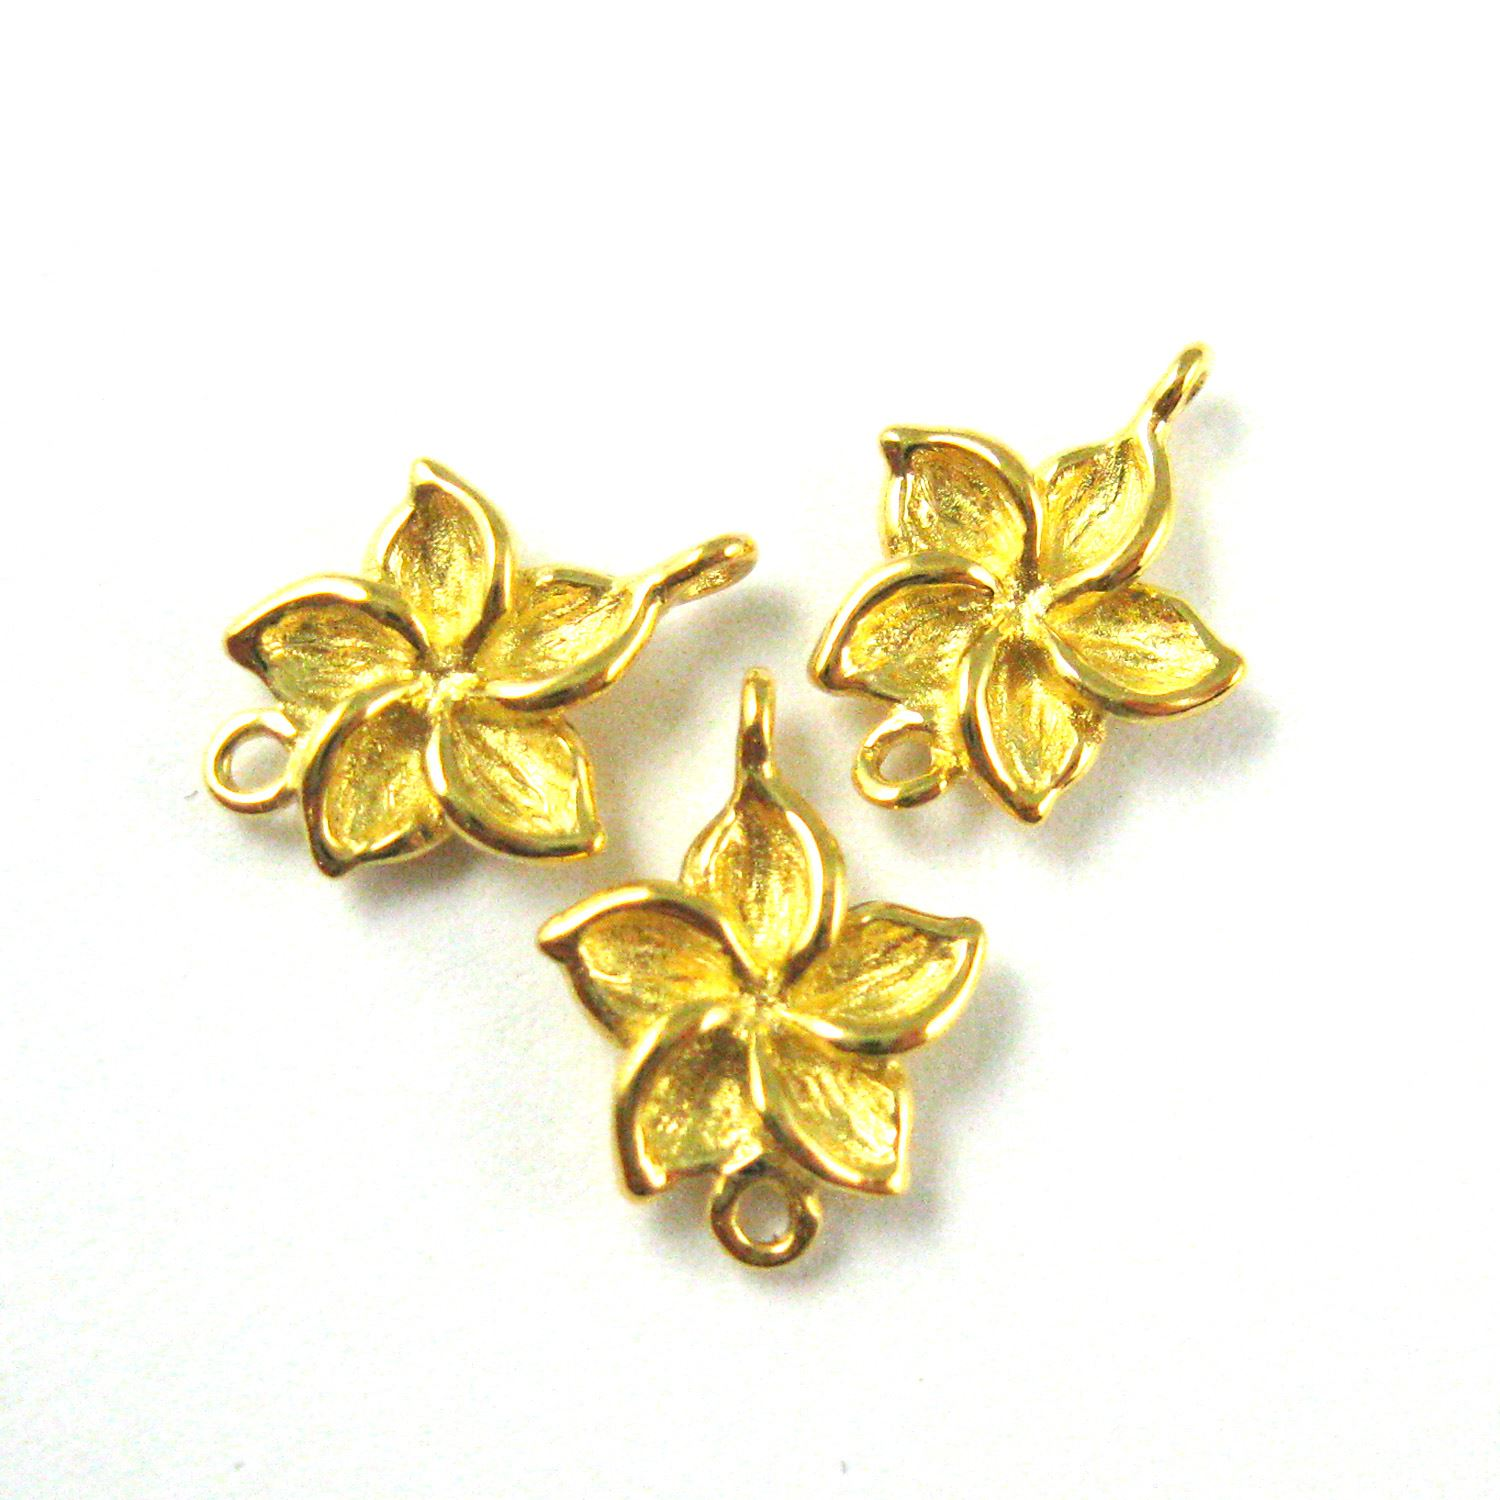 22K Gold plated 925 Sterling Silver Charm-Gold Fragapani Flower Charm- High Polish Vermeil Link Connector-11mm  ( 3 pcs)